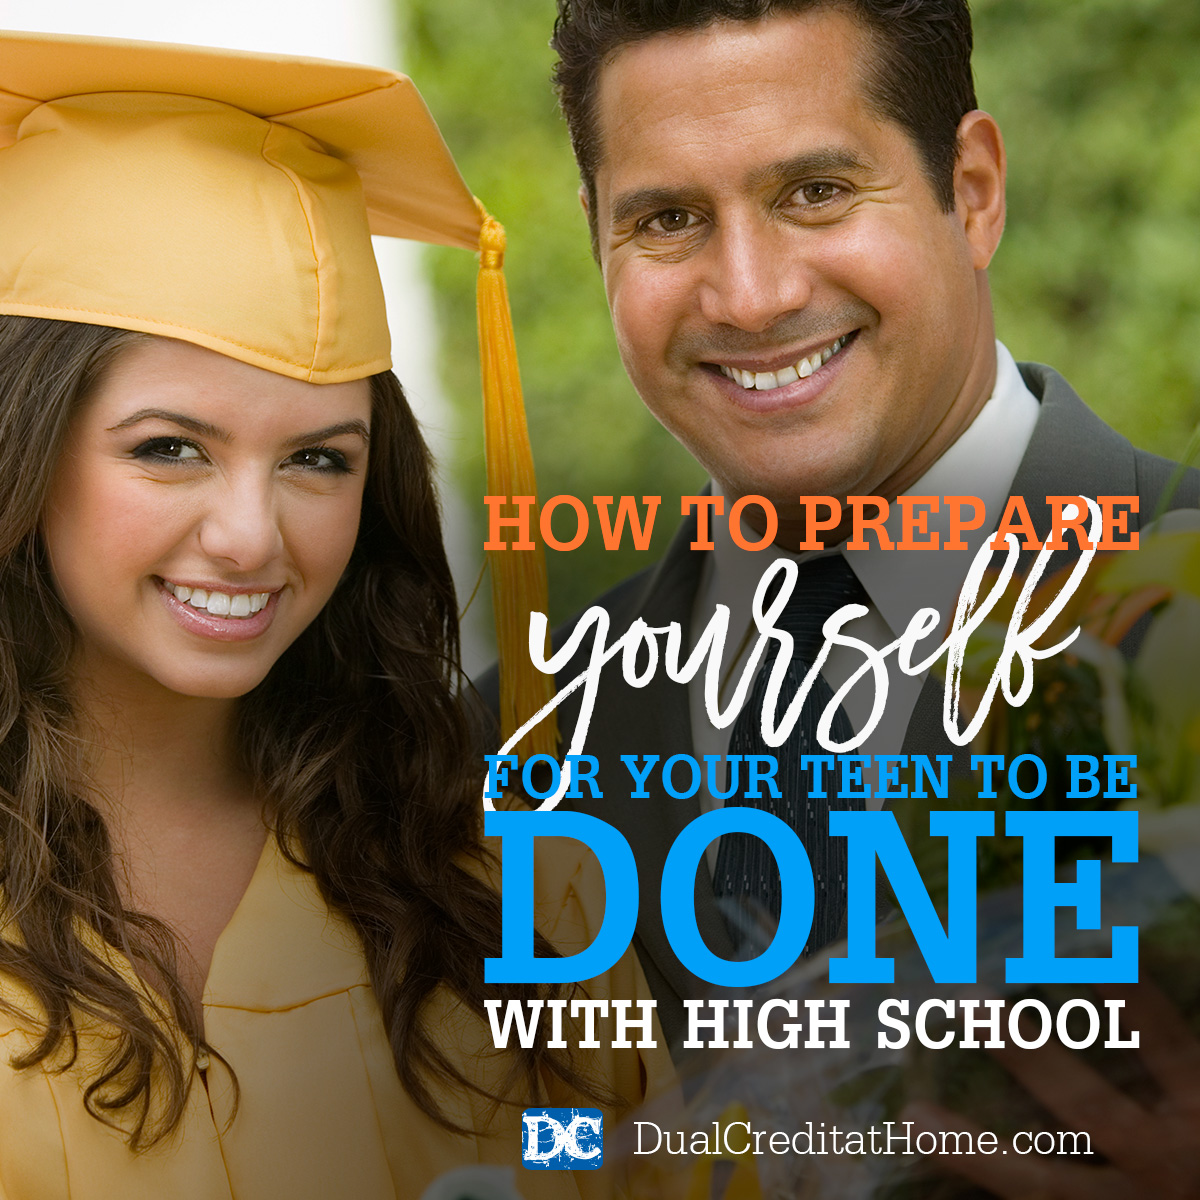 How to Prepare Yourself for Your Teen to Be Done with High School